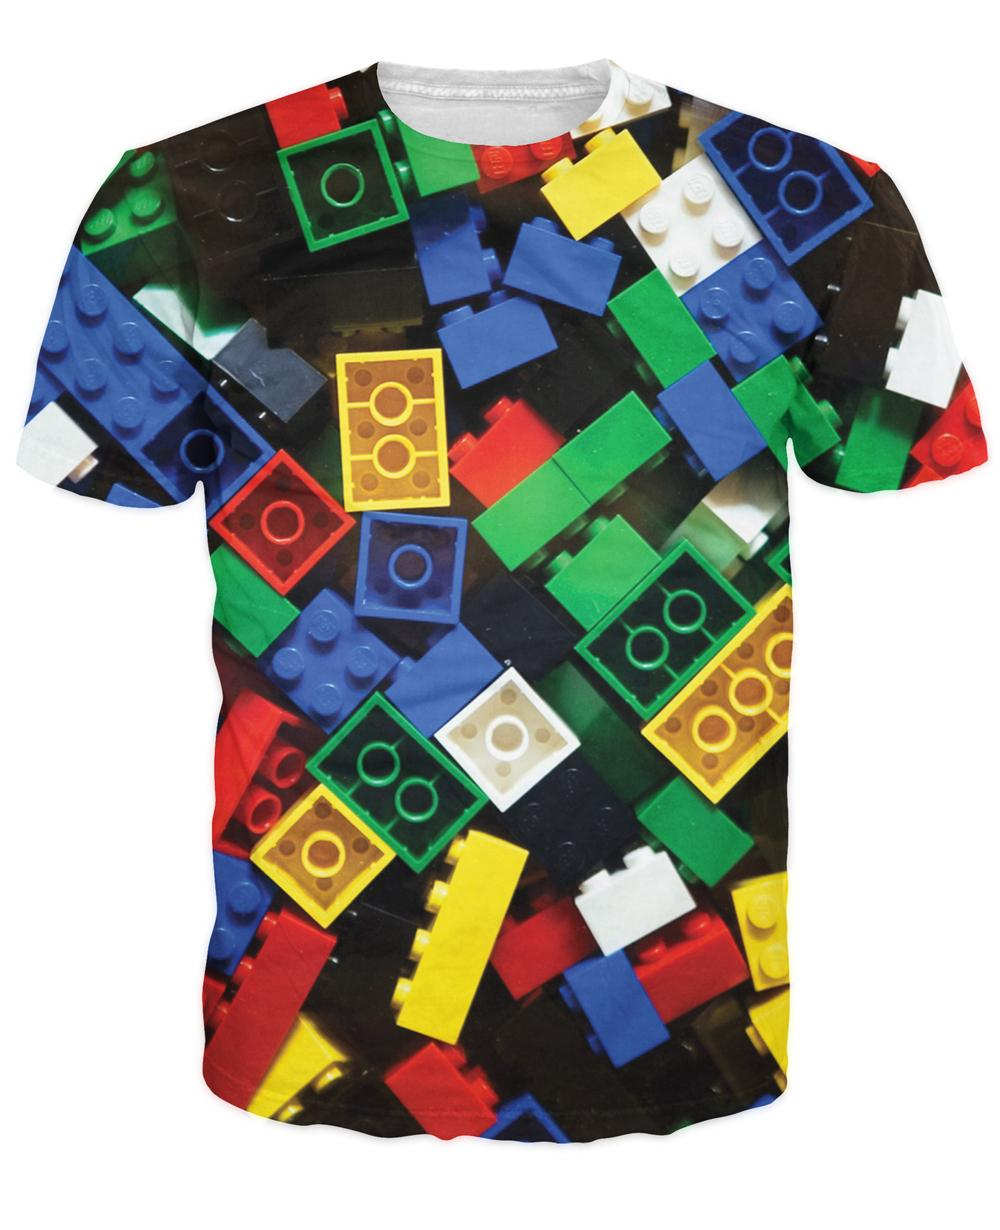 Women Men Summer Style Lego Bricks T Shirt Short Sleeve Shirt super popular children's toy Outfits Top Tees clothing(China (Mainland))